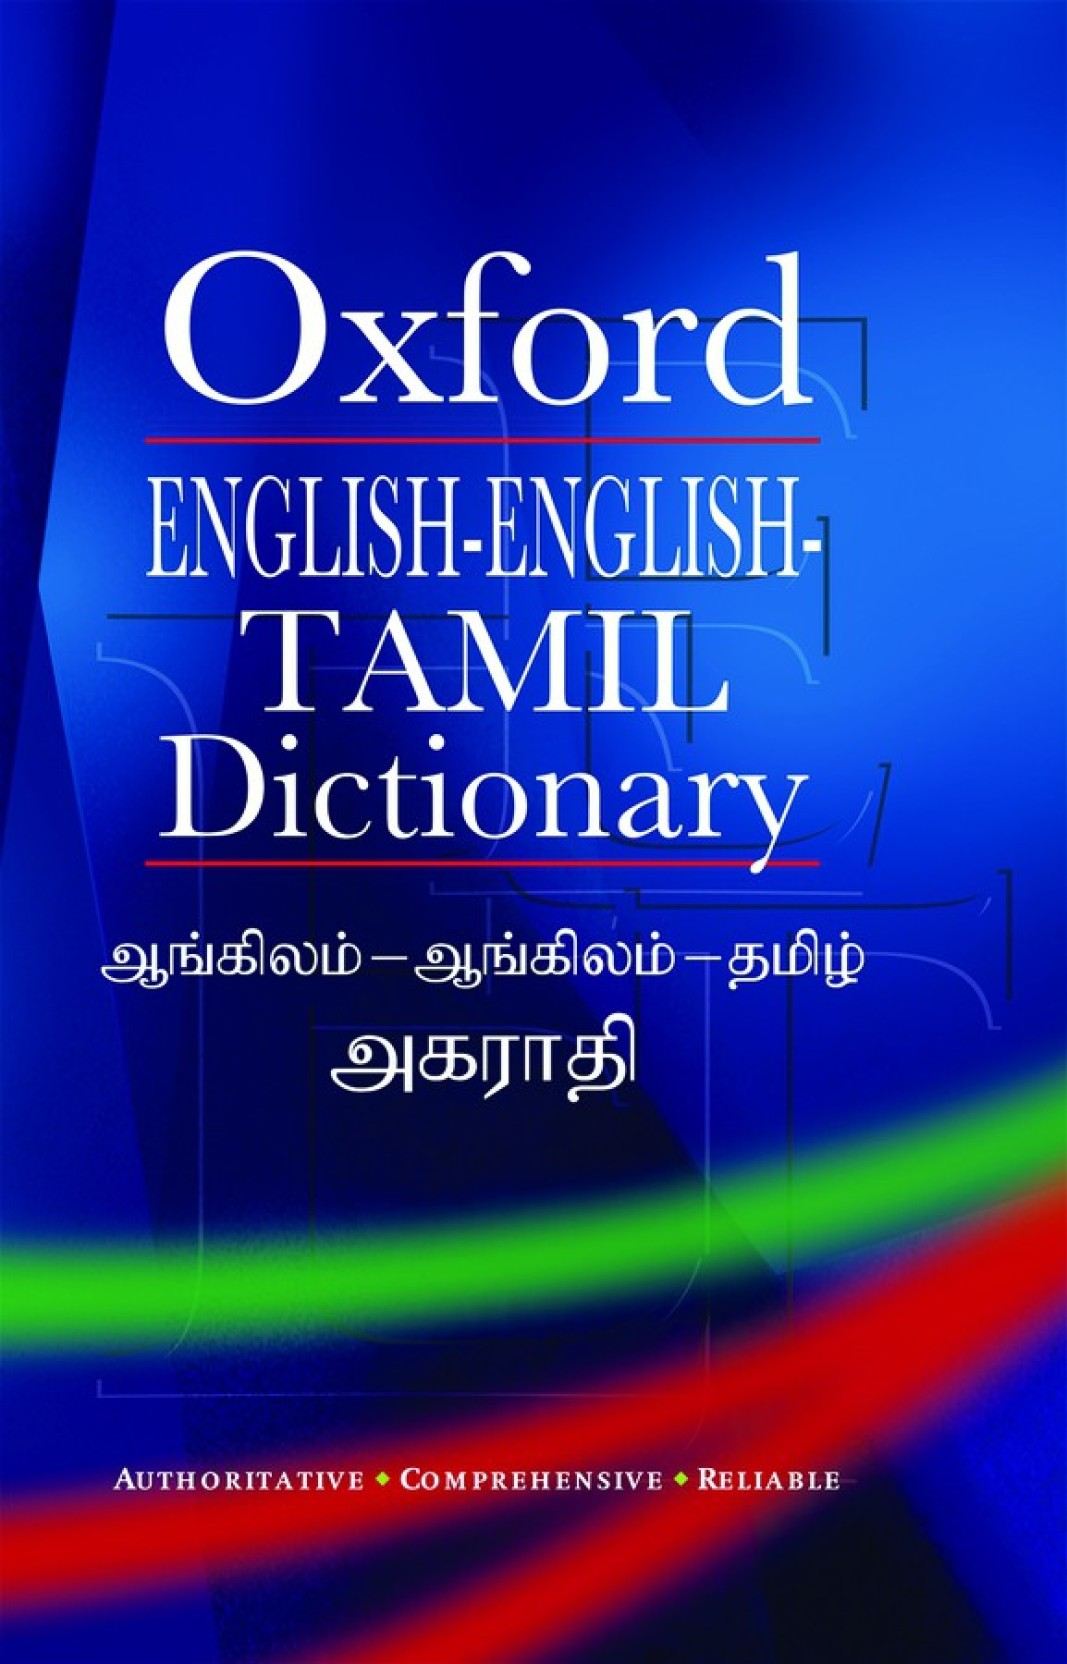 Oxford English - English - Tamil Dictionary